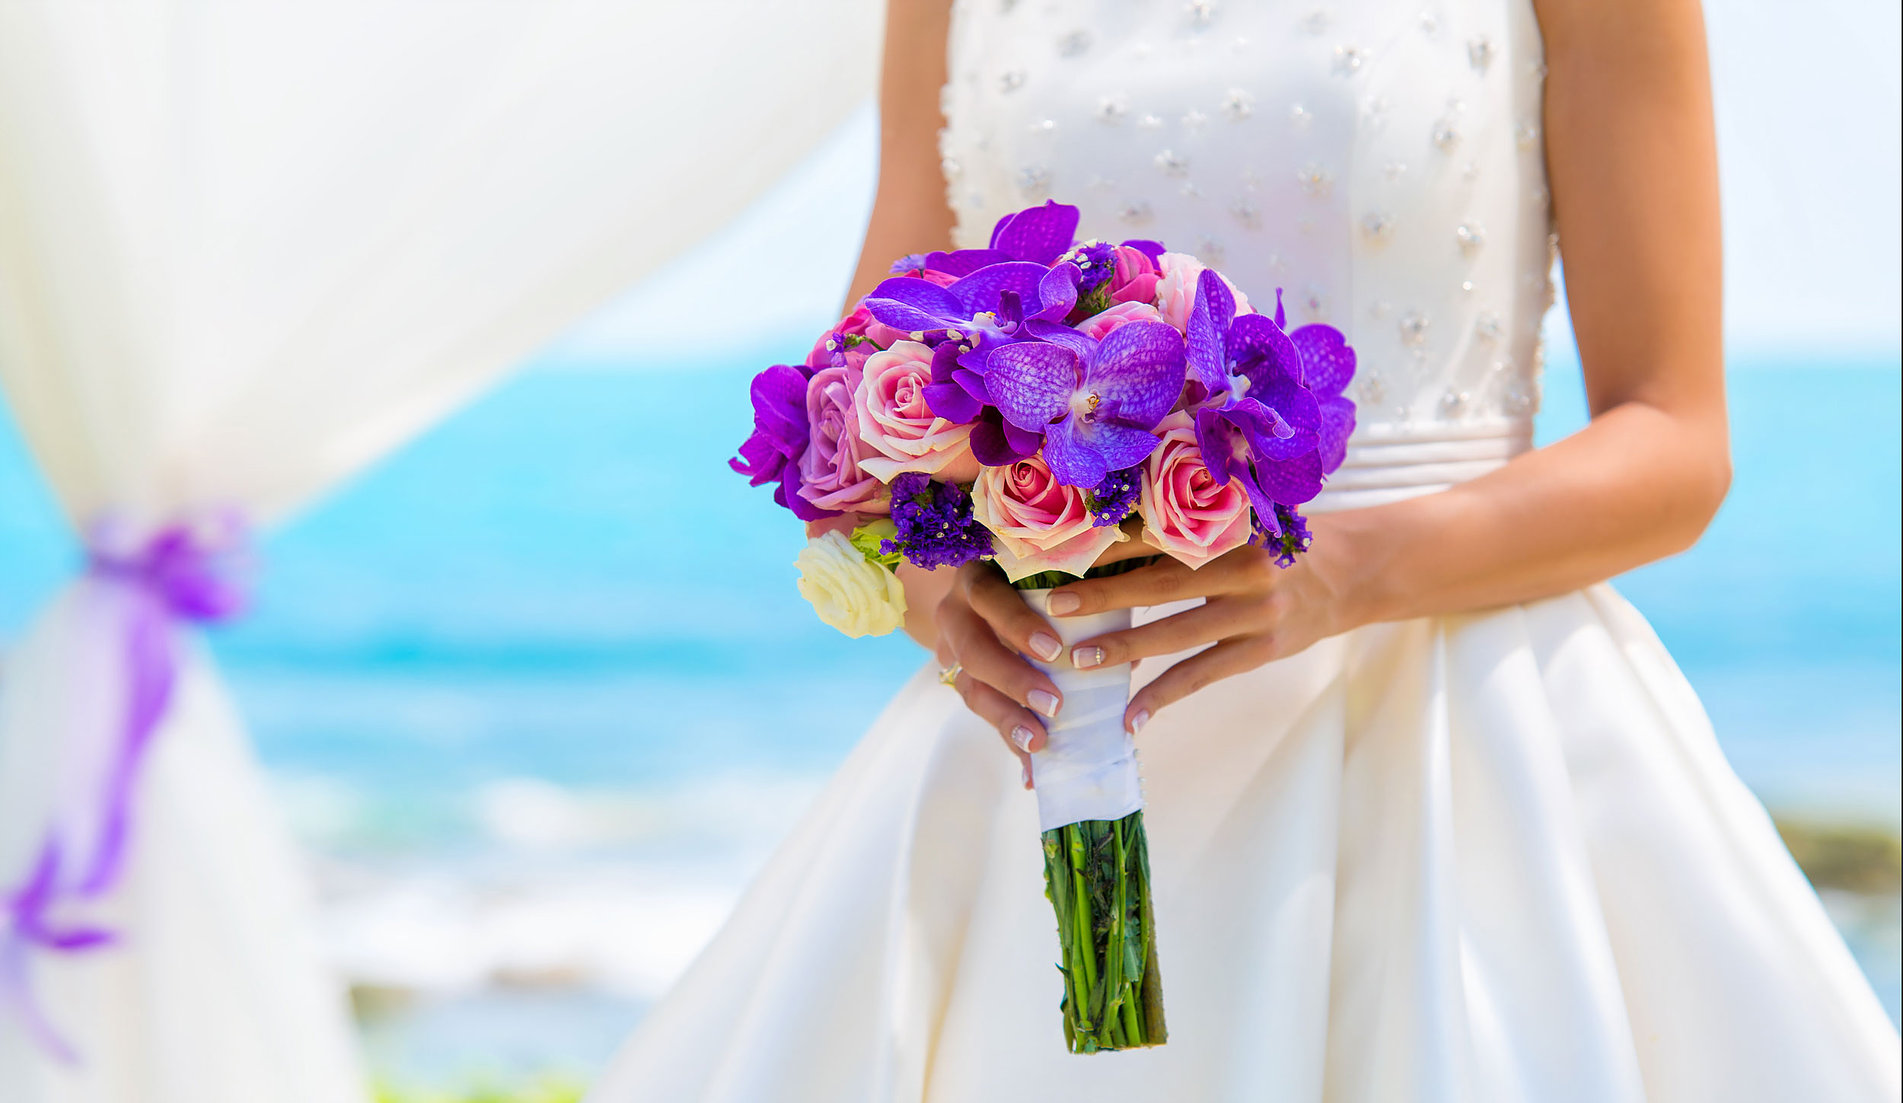 Koh Samui Wedding Packages 展示照片-2